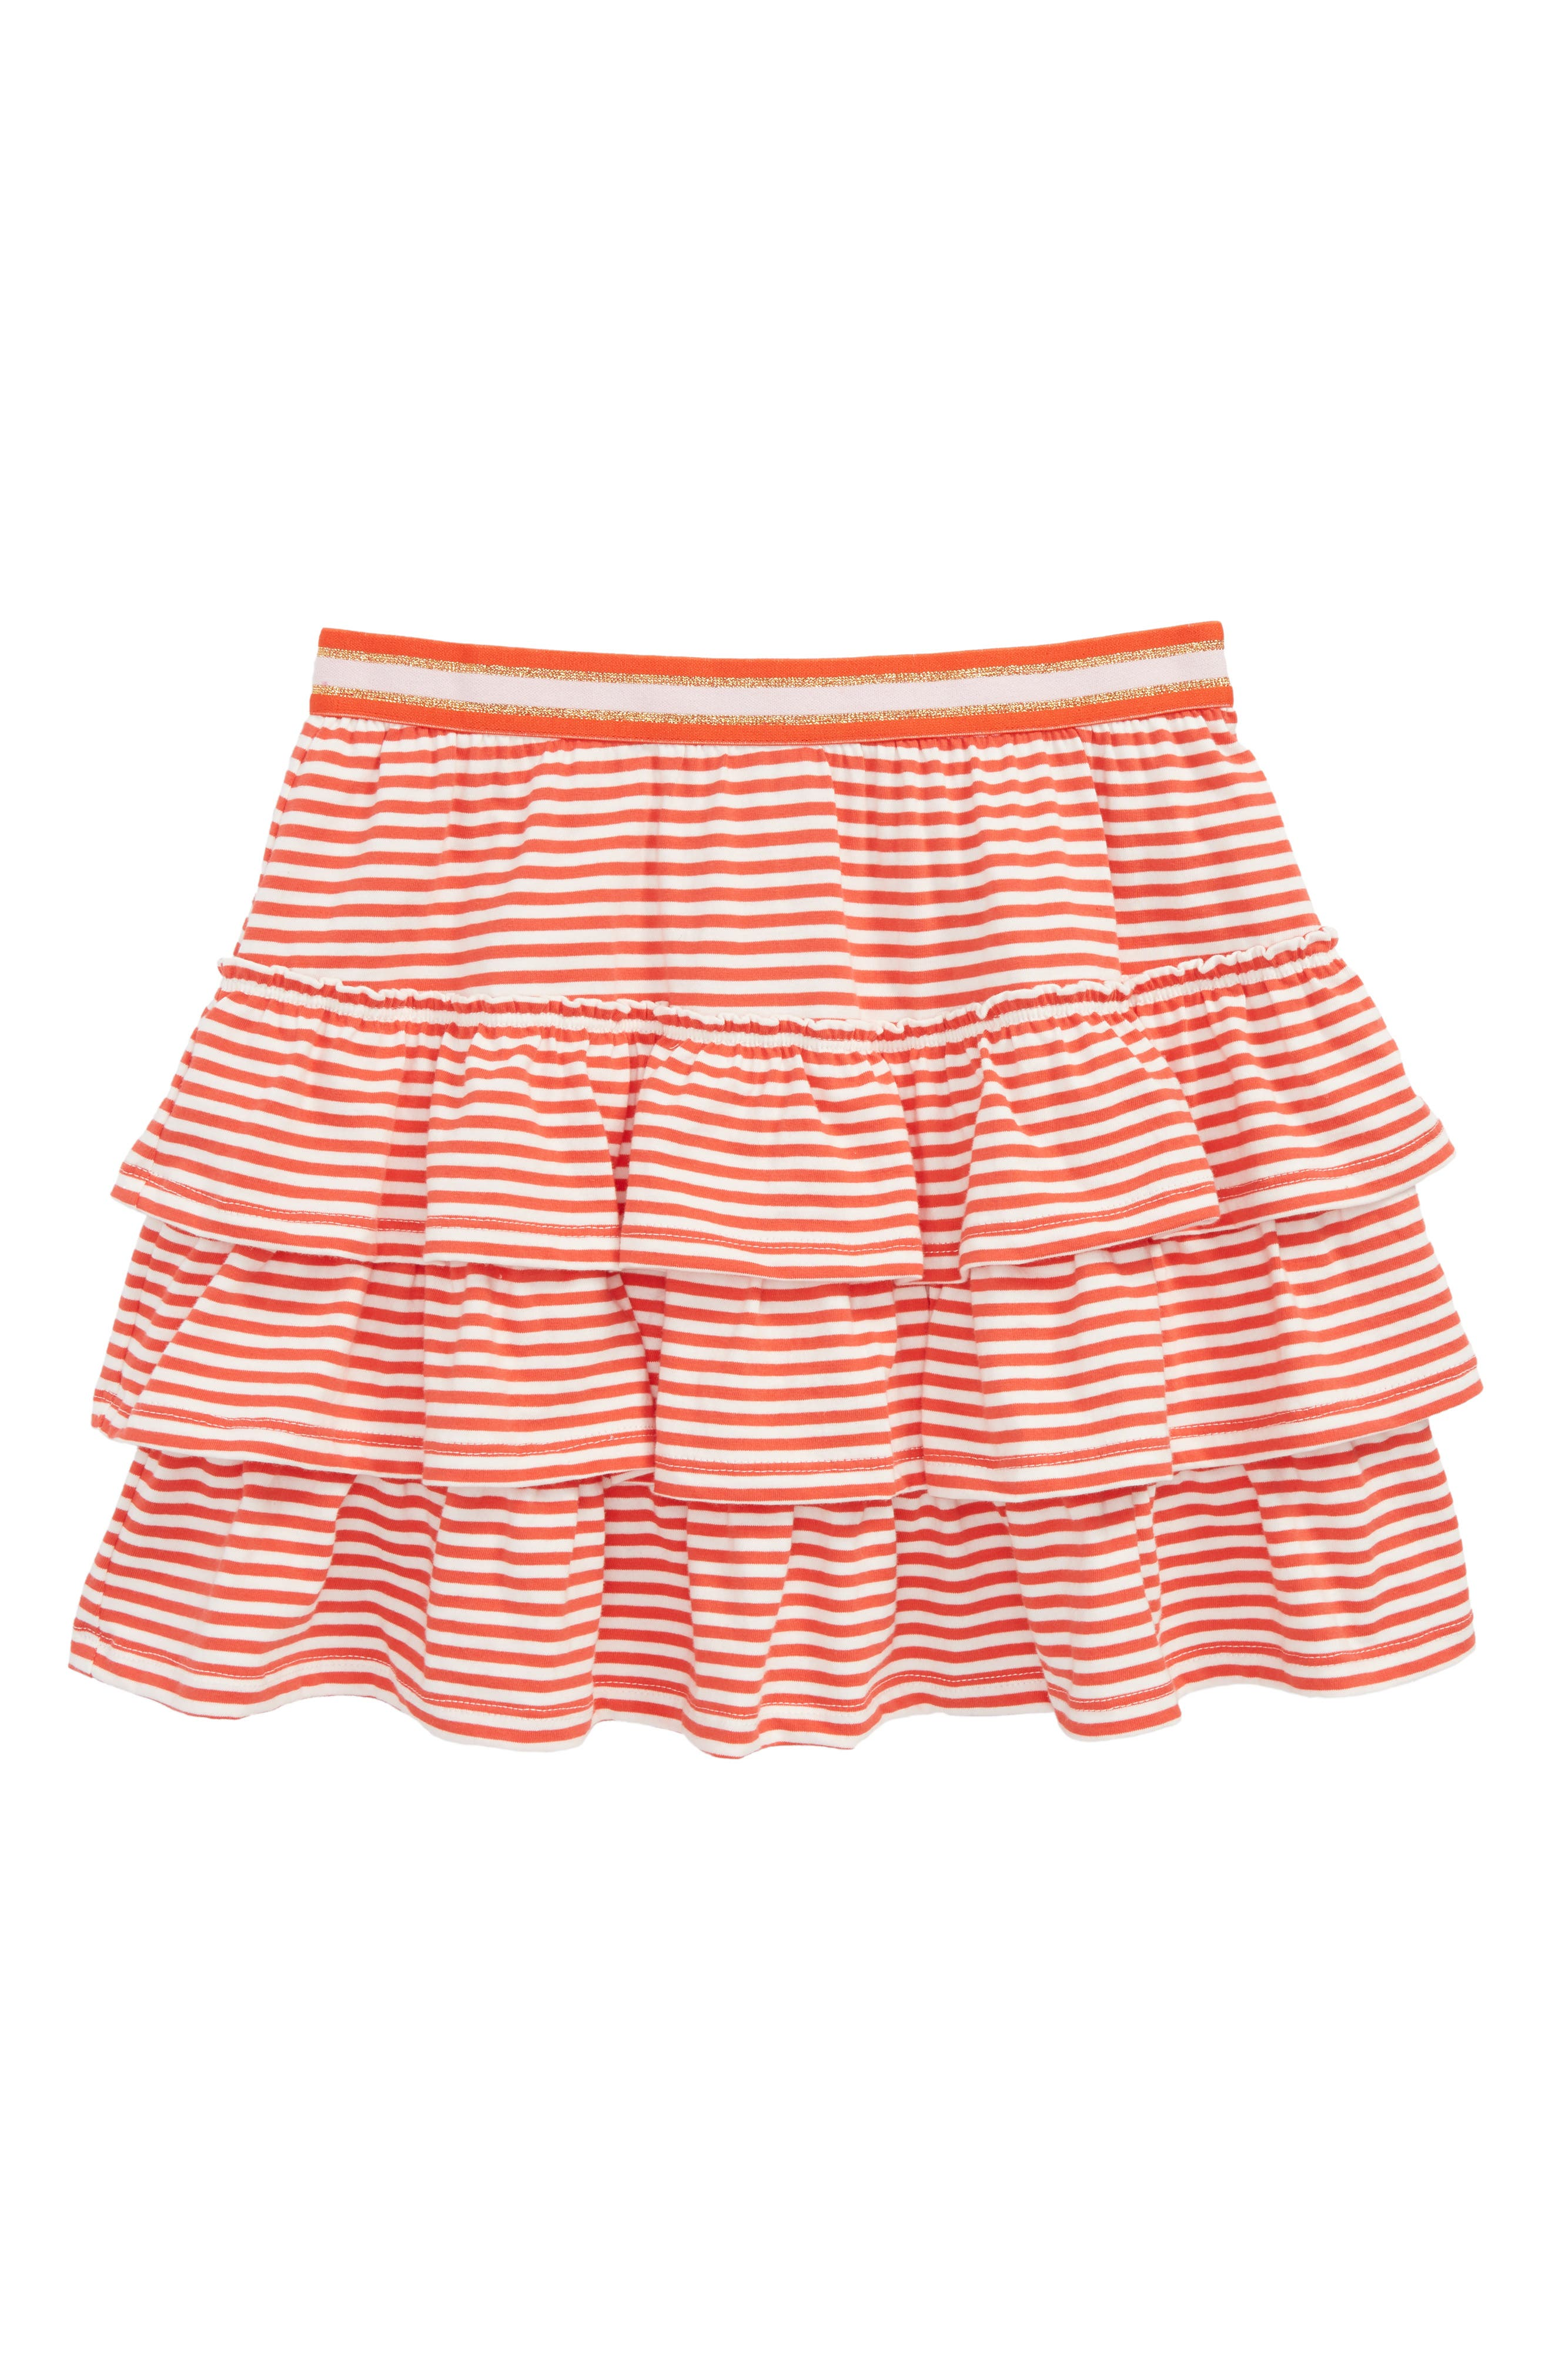 Ruffle Skort,                             Main thumbnail 1, color,                             Rosehip Red/ Ivory Red